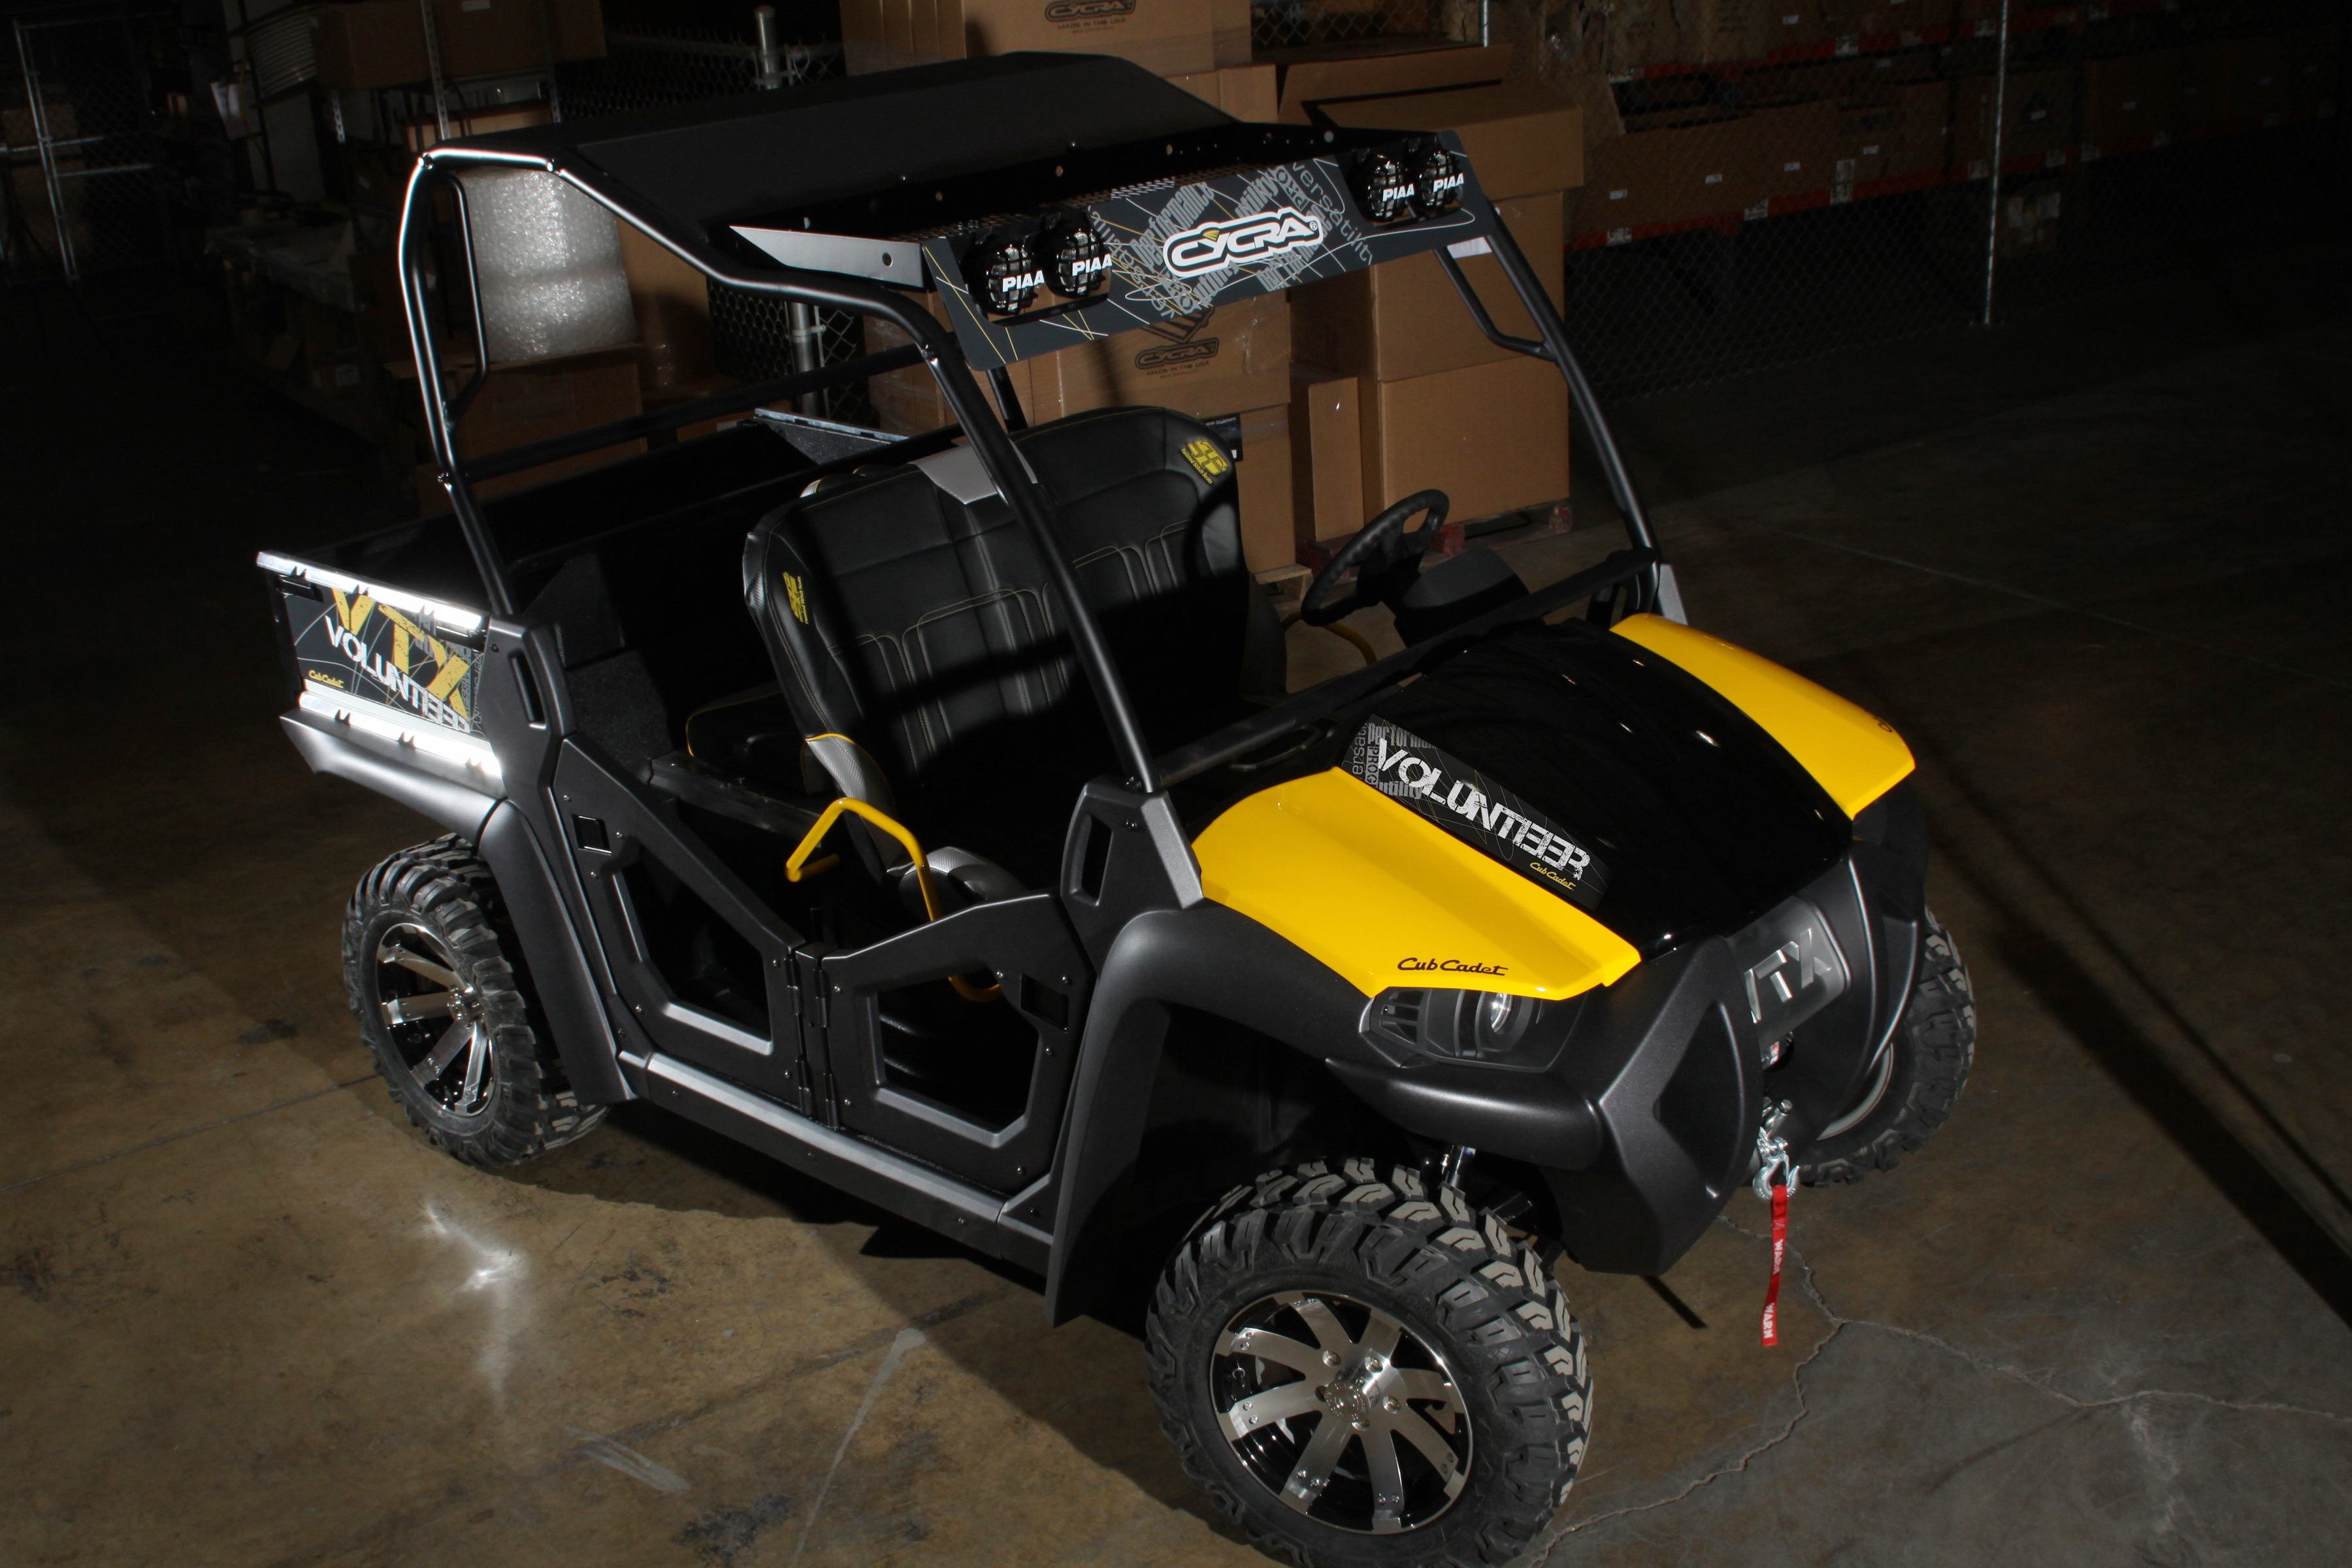 NEW VOLUNTEER VTX CROSS OVER CONCEPTS TAKES CLAIM IN NEW UTV CLASS AT SEMA